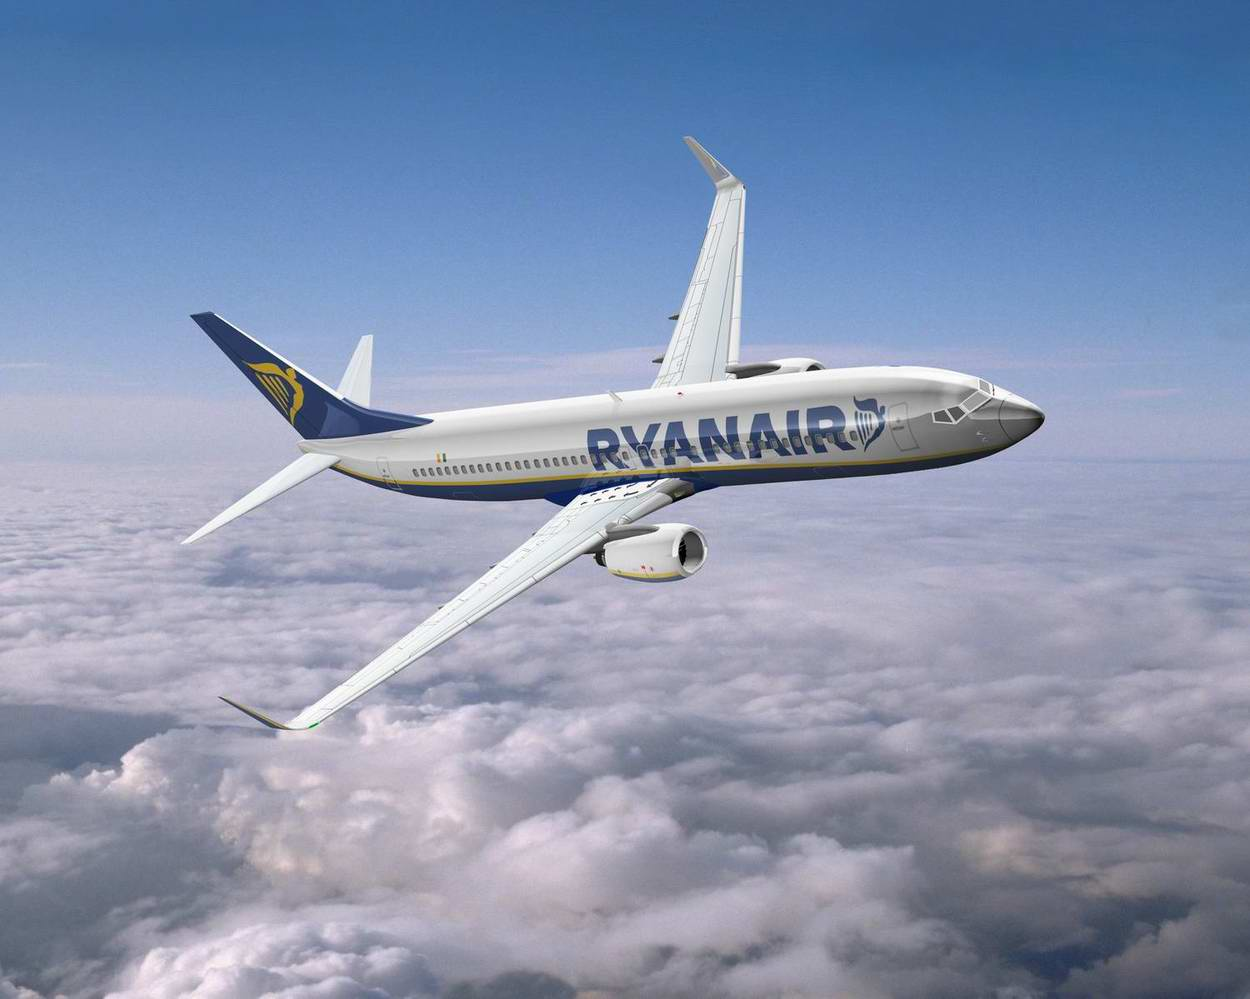 Ryanair: the world's most expensive airline